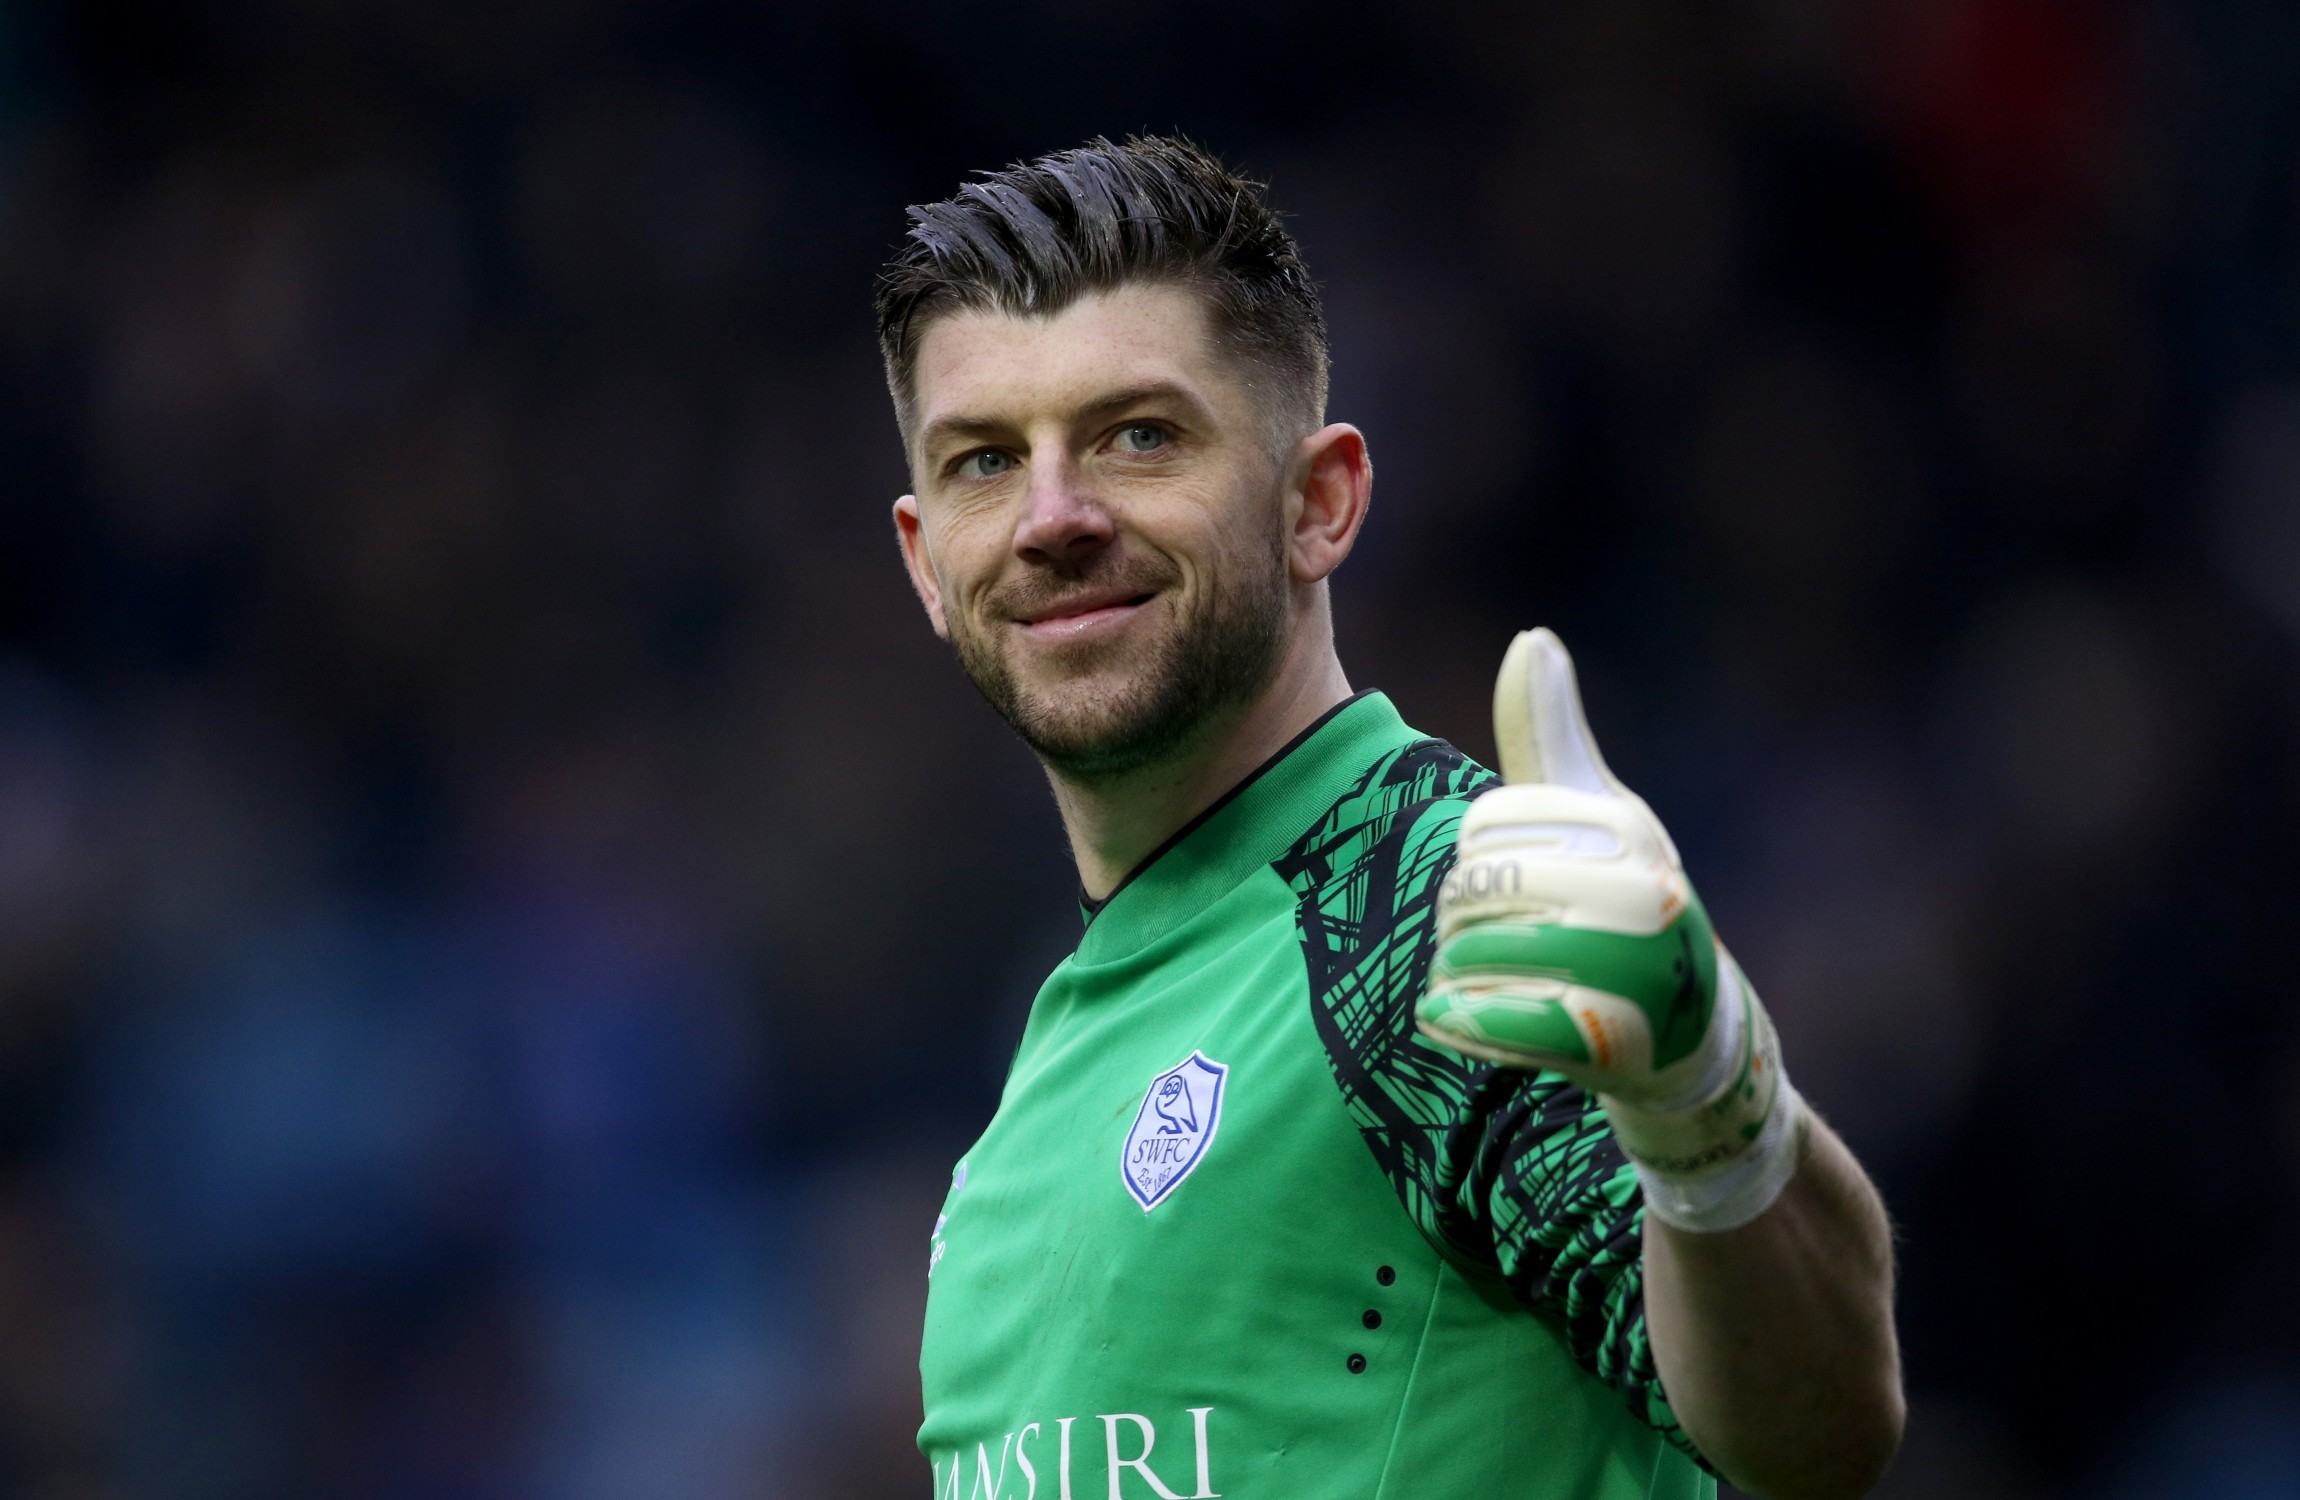 Who is the best goalkeeper in the world